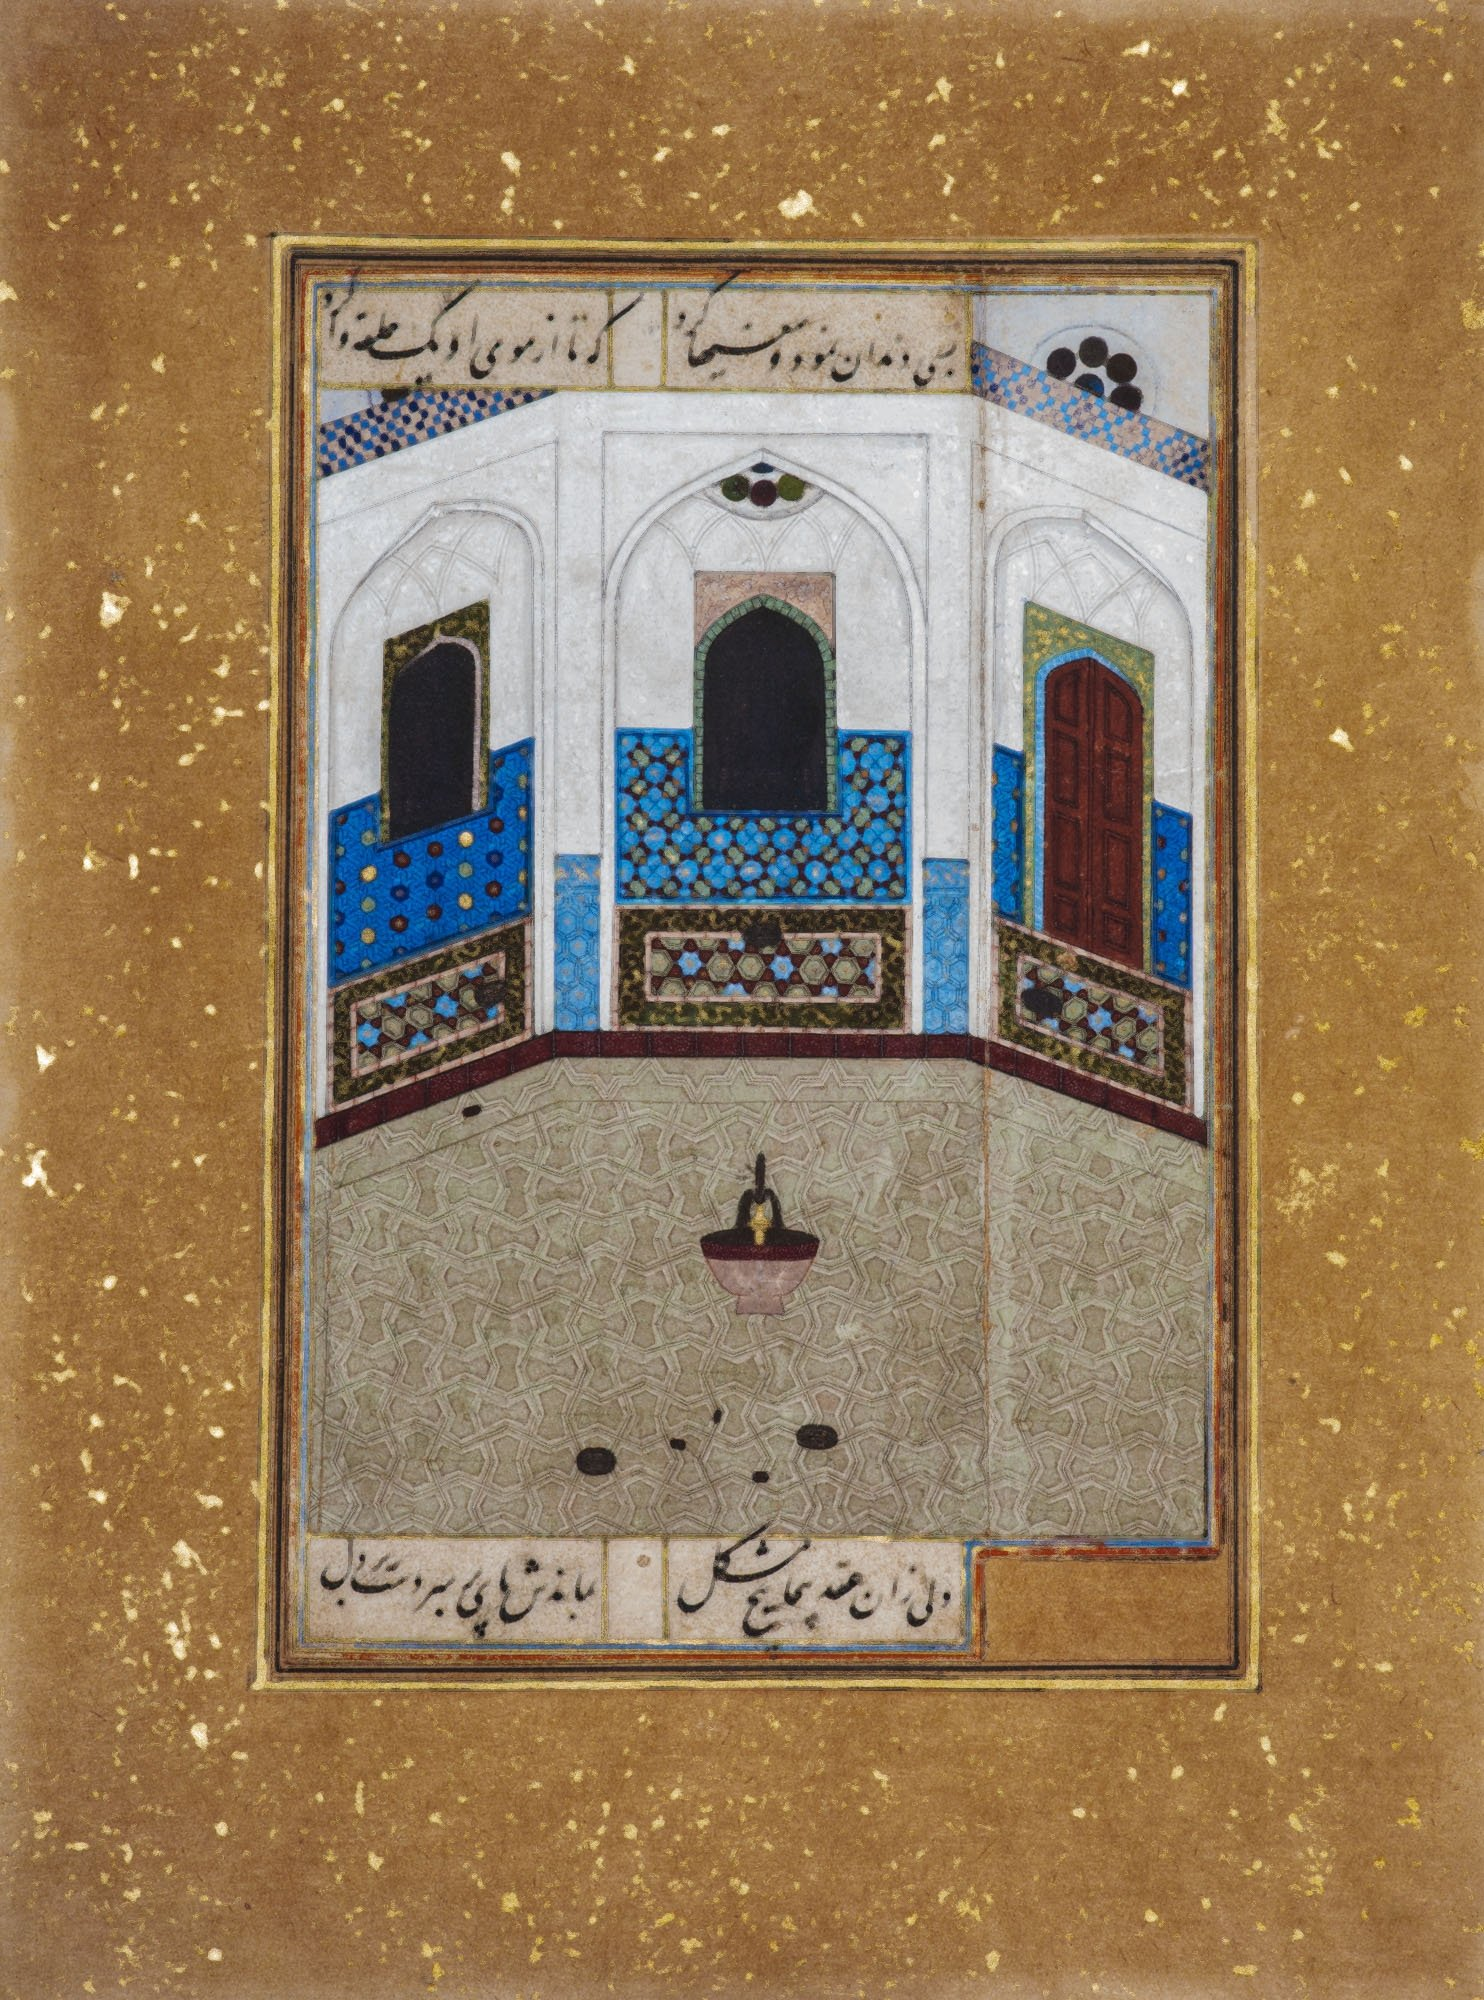 Shahpour Pouyan, 'Mihr in a Bath House in Khwarazm,' 2019, mixed media and print on German cotton paper, 25 by 20 centimeters. (PHOTO COURTESY OF PERA MUSEUM)